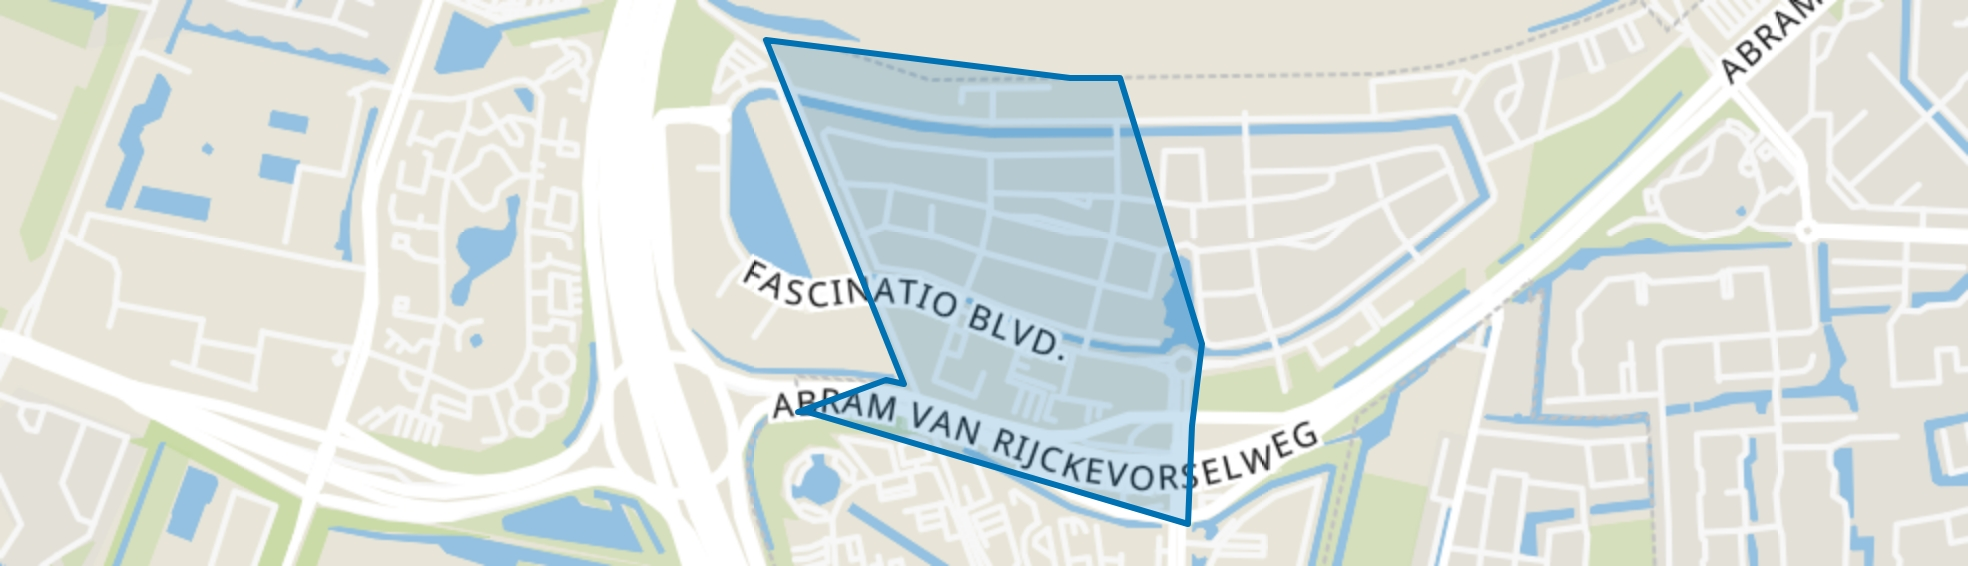 Fascinatio-west, Capelle aan den IJssel map